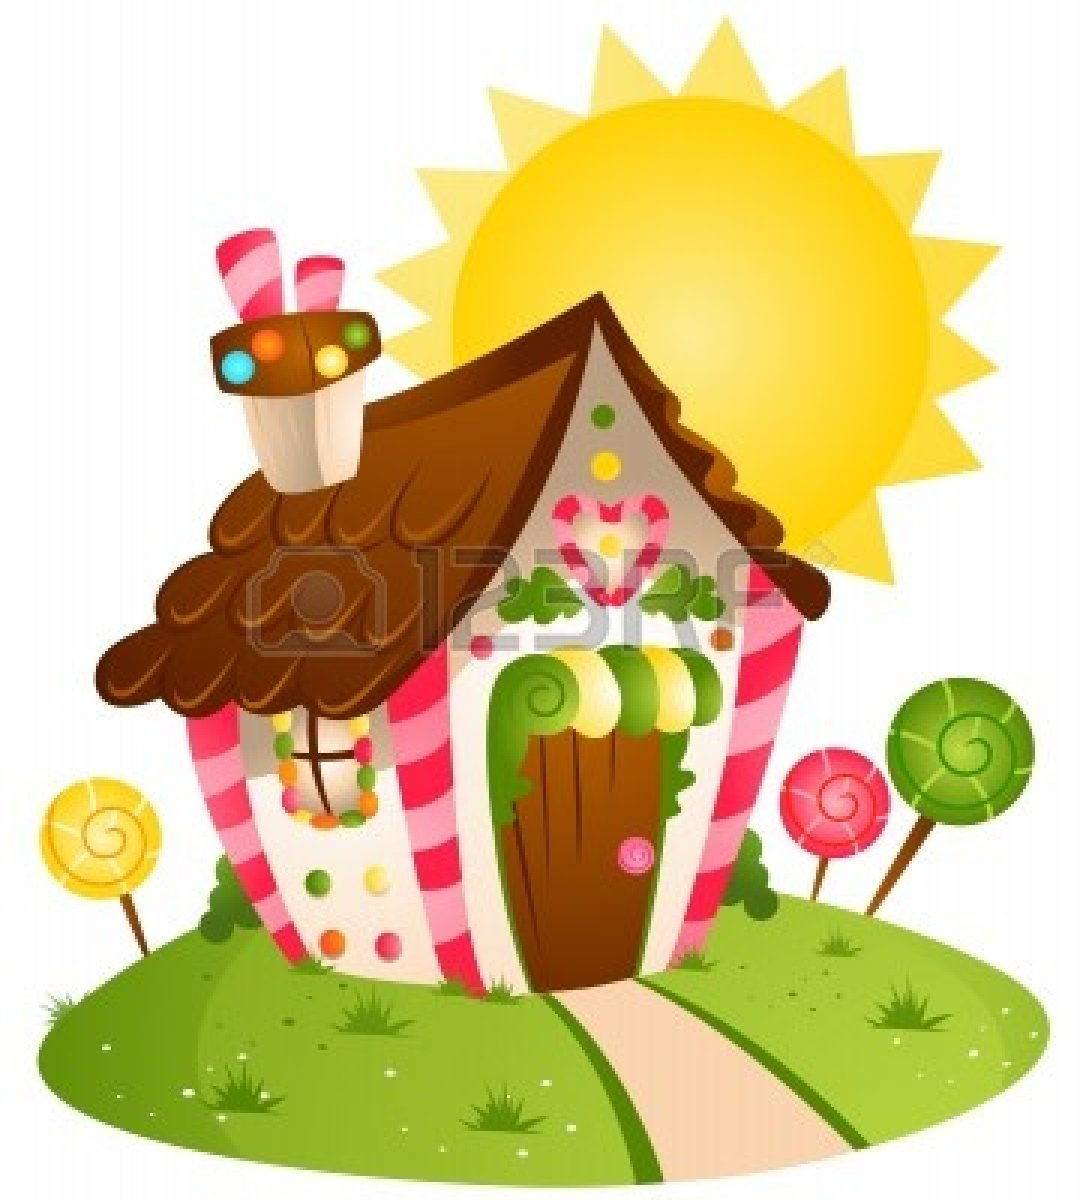 Cute house clip art clipart panda free clipart images for Cute house pictures